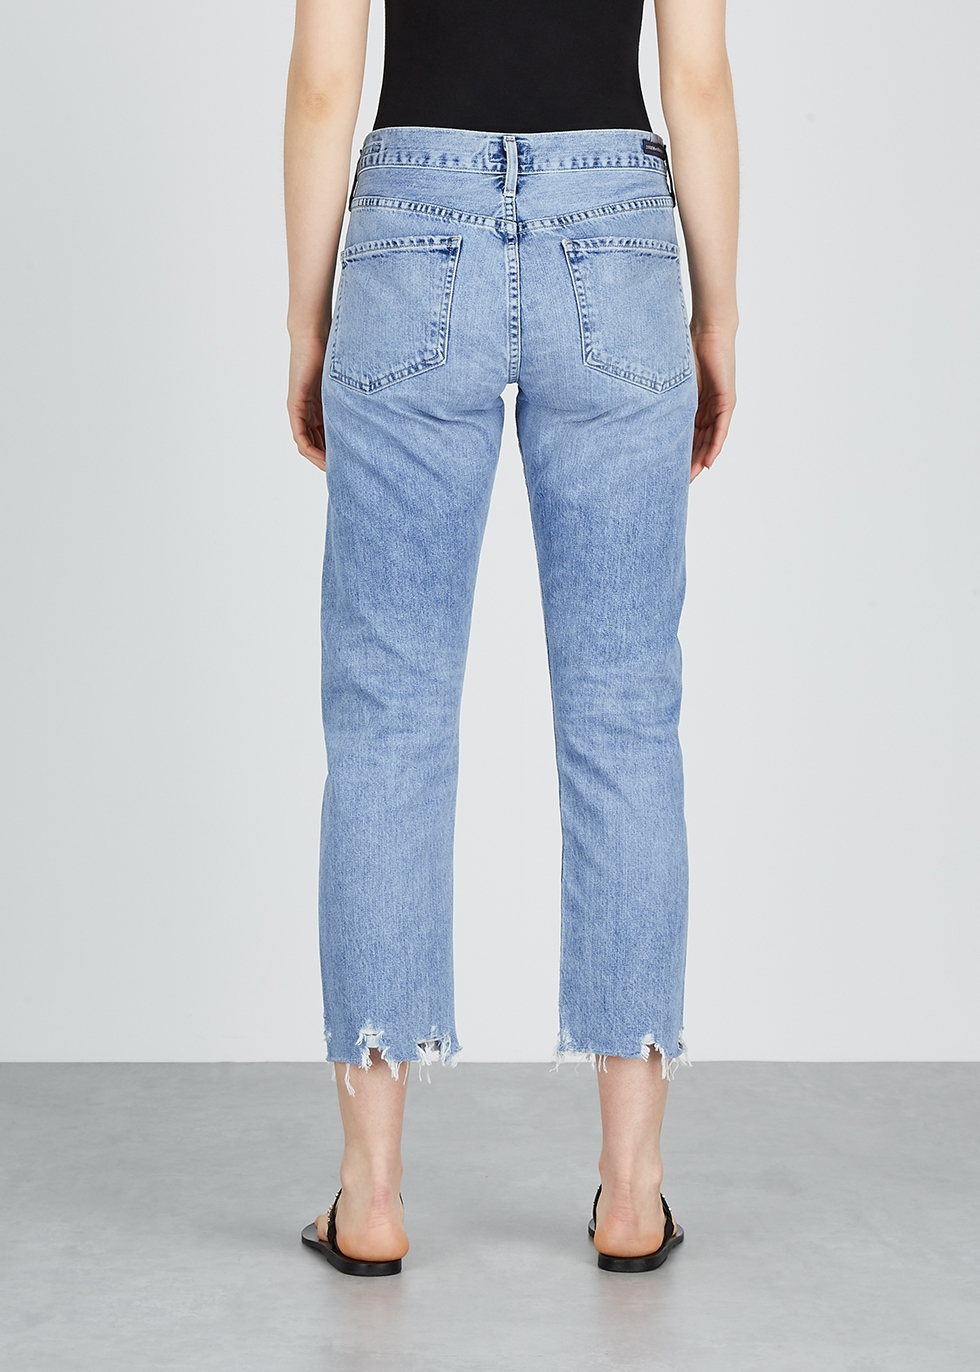 Emerson blue slim-leg jeans - Citizens of Humanity